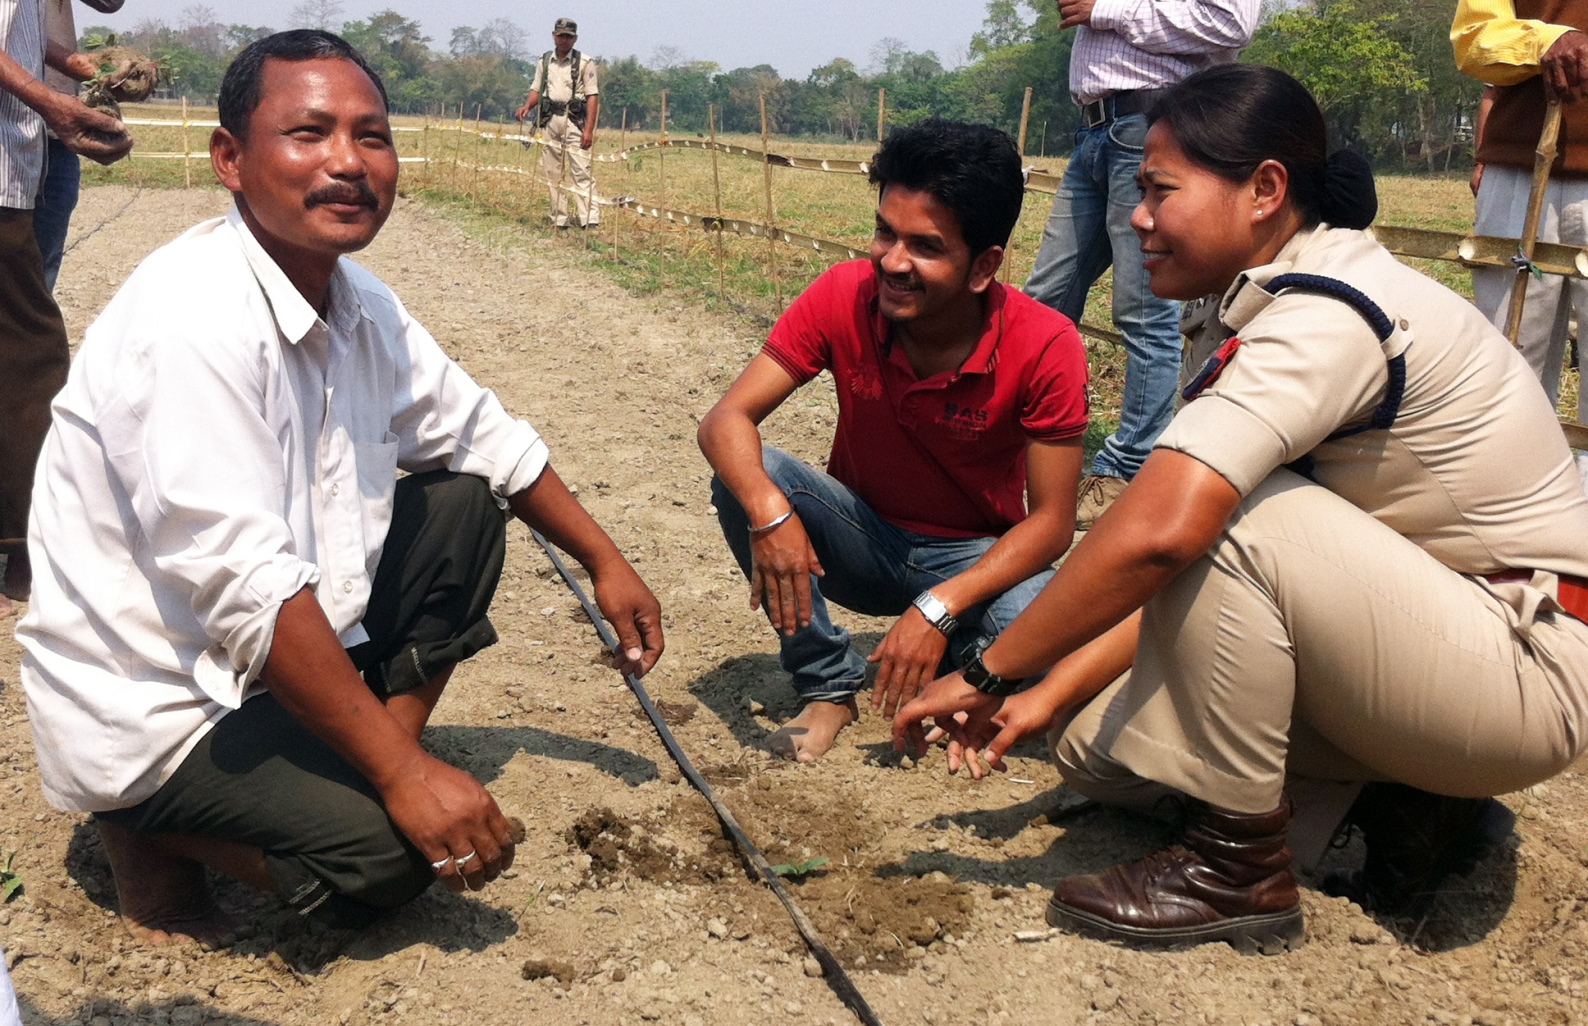 Mising farmers learning to use Israeli drip-irrigation methods. Photo courtesy of Gili Navon